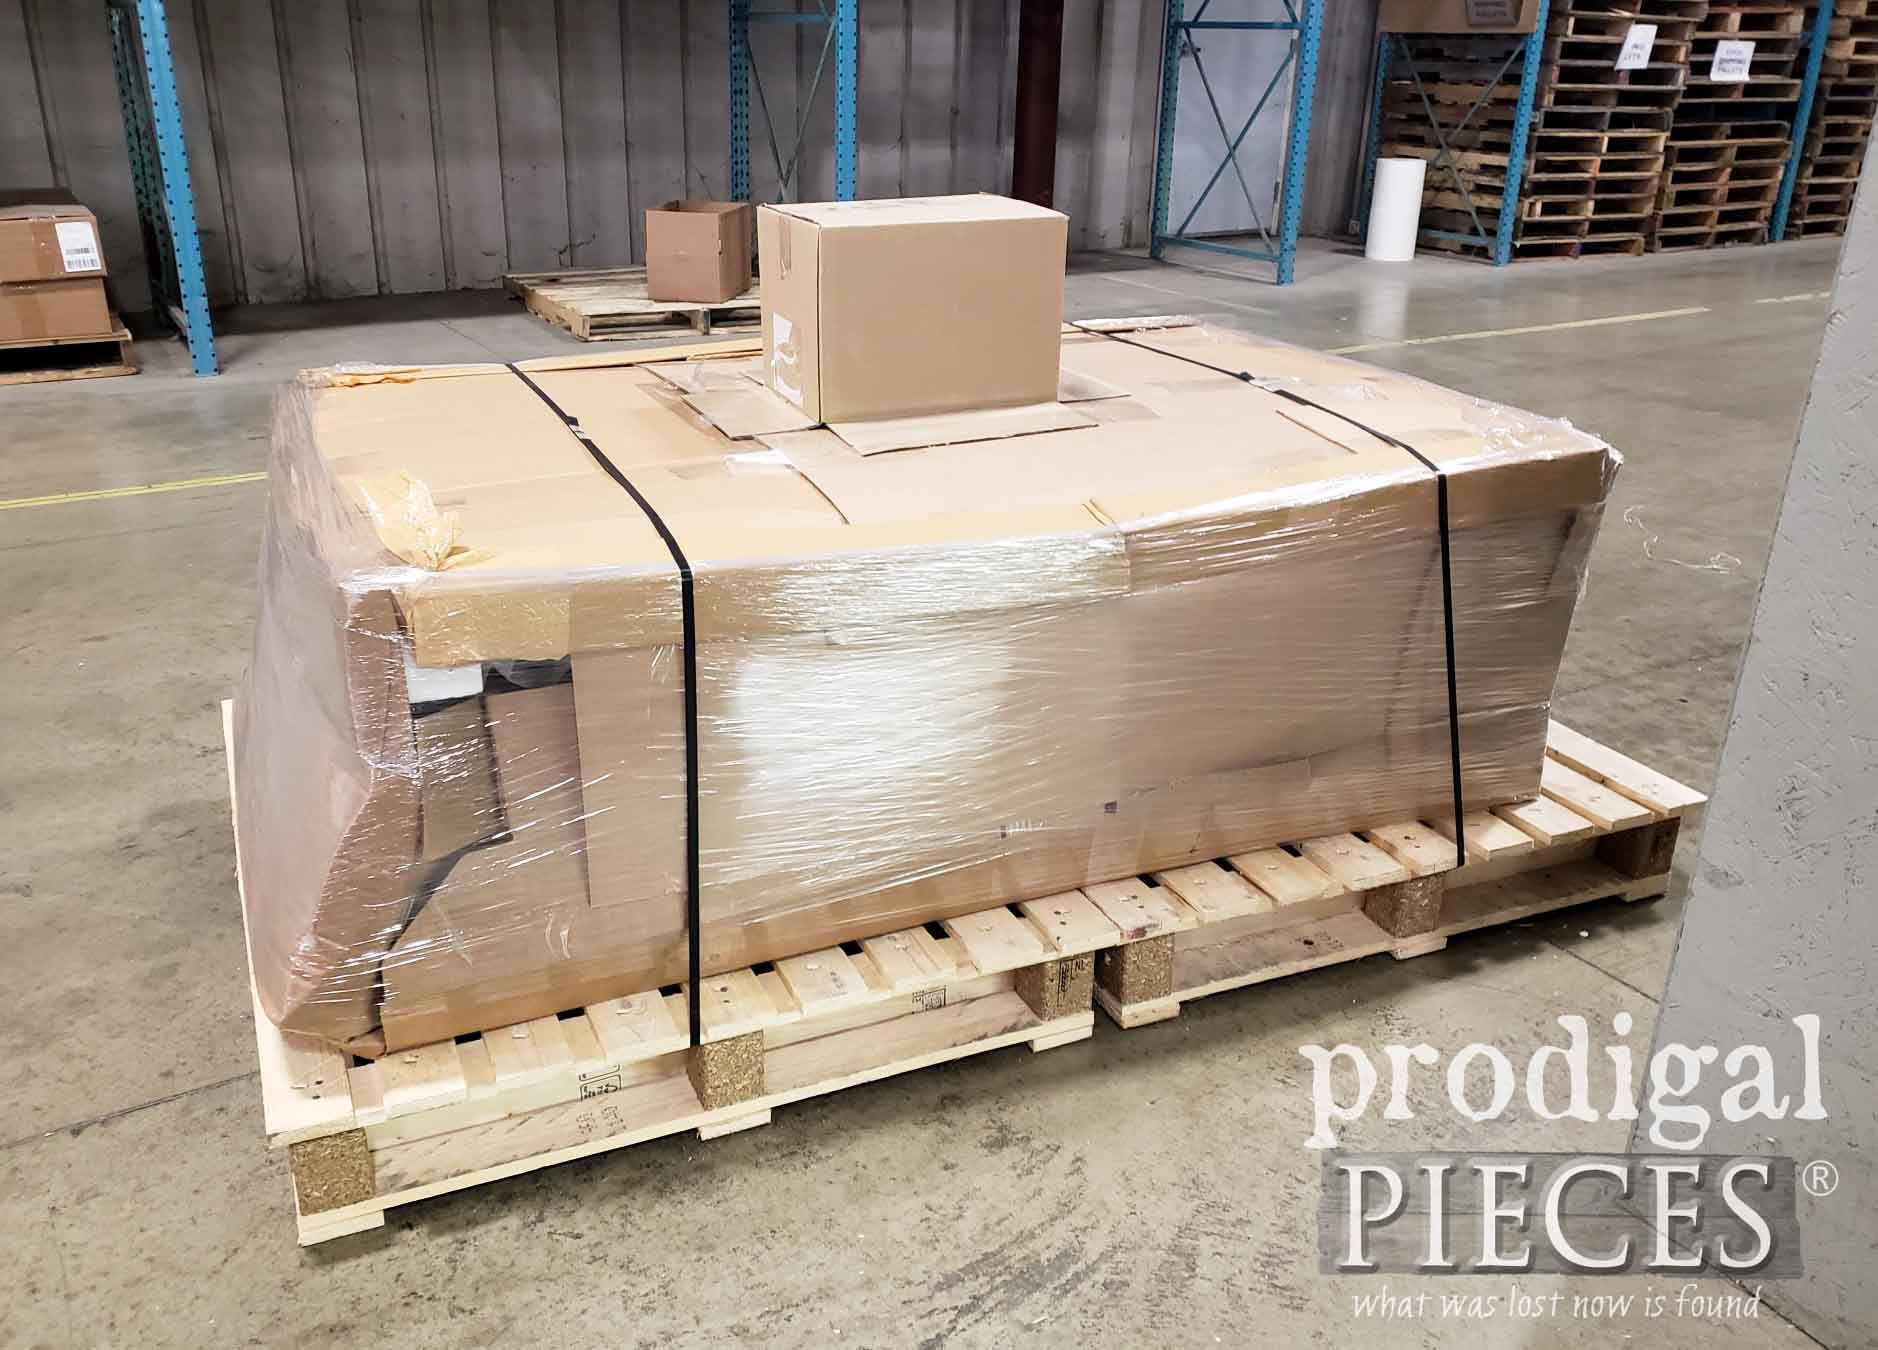 Wrapped Antique Waterfall Buffet Being Delivered to Finding Home Program Honoree Military Family | prodigalpieces.com